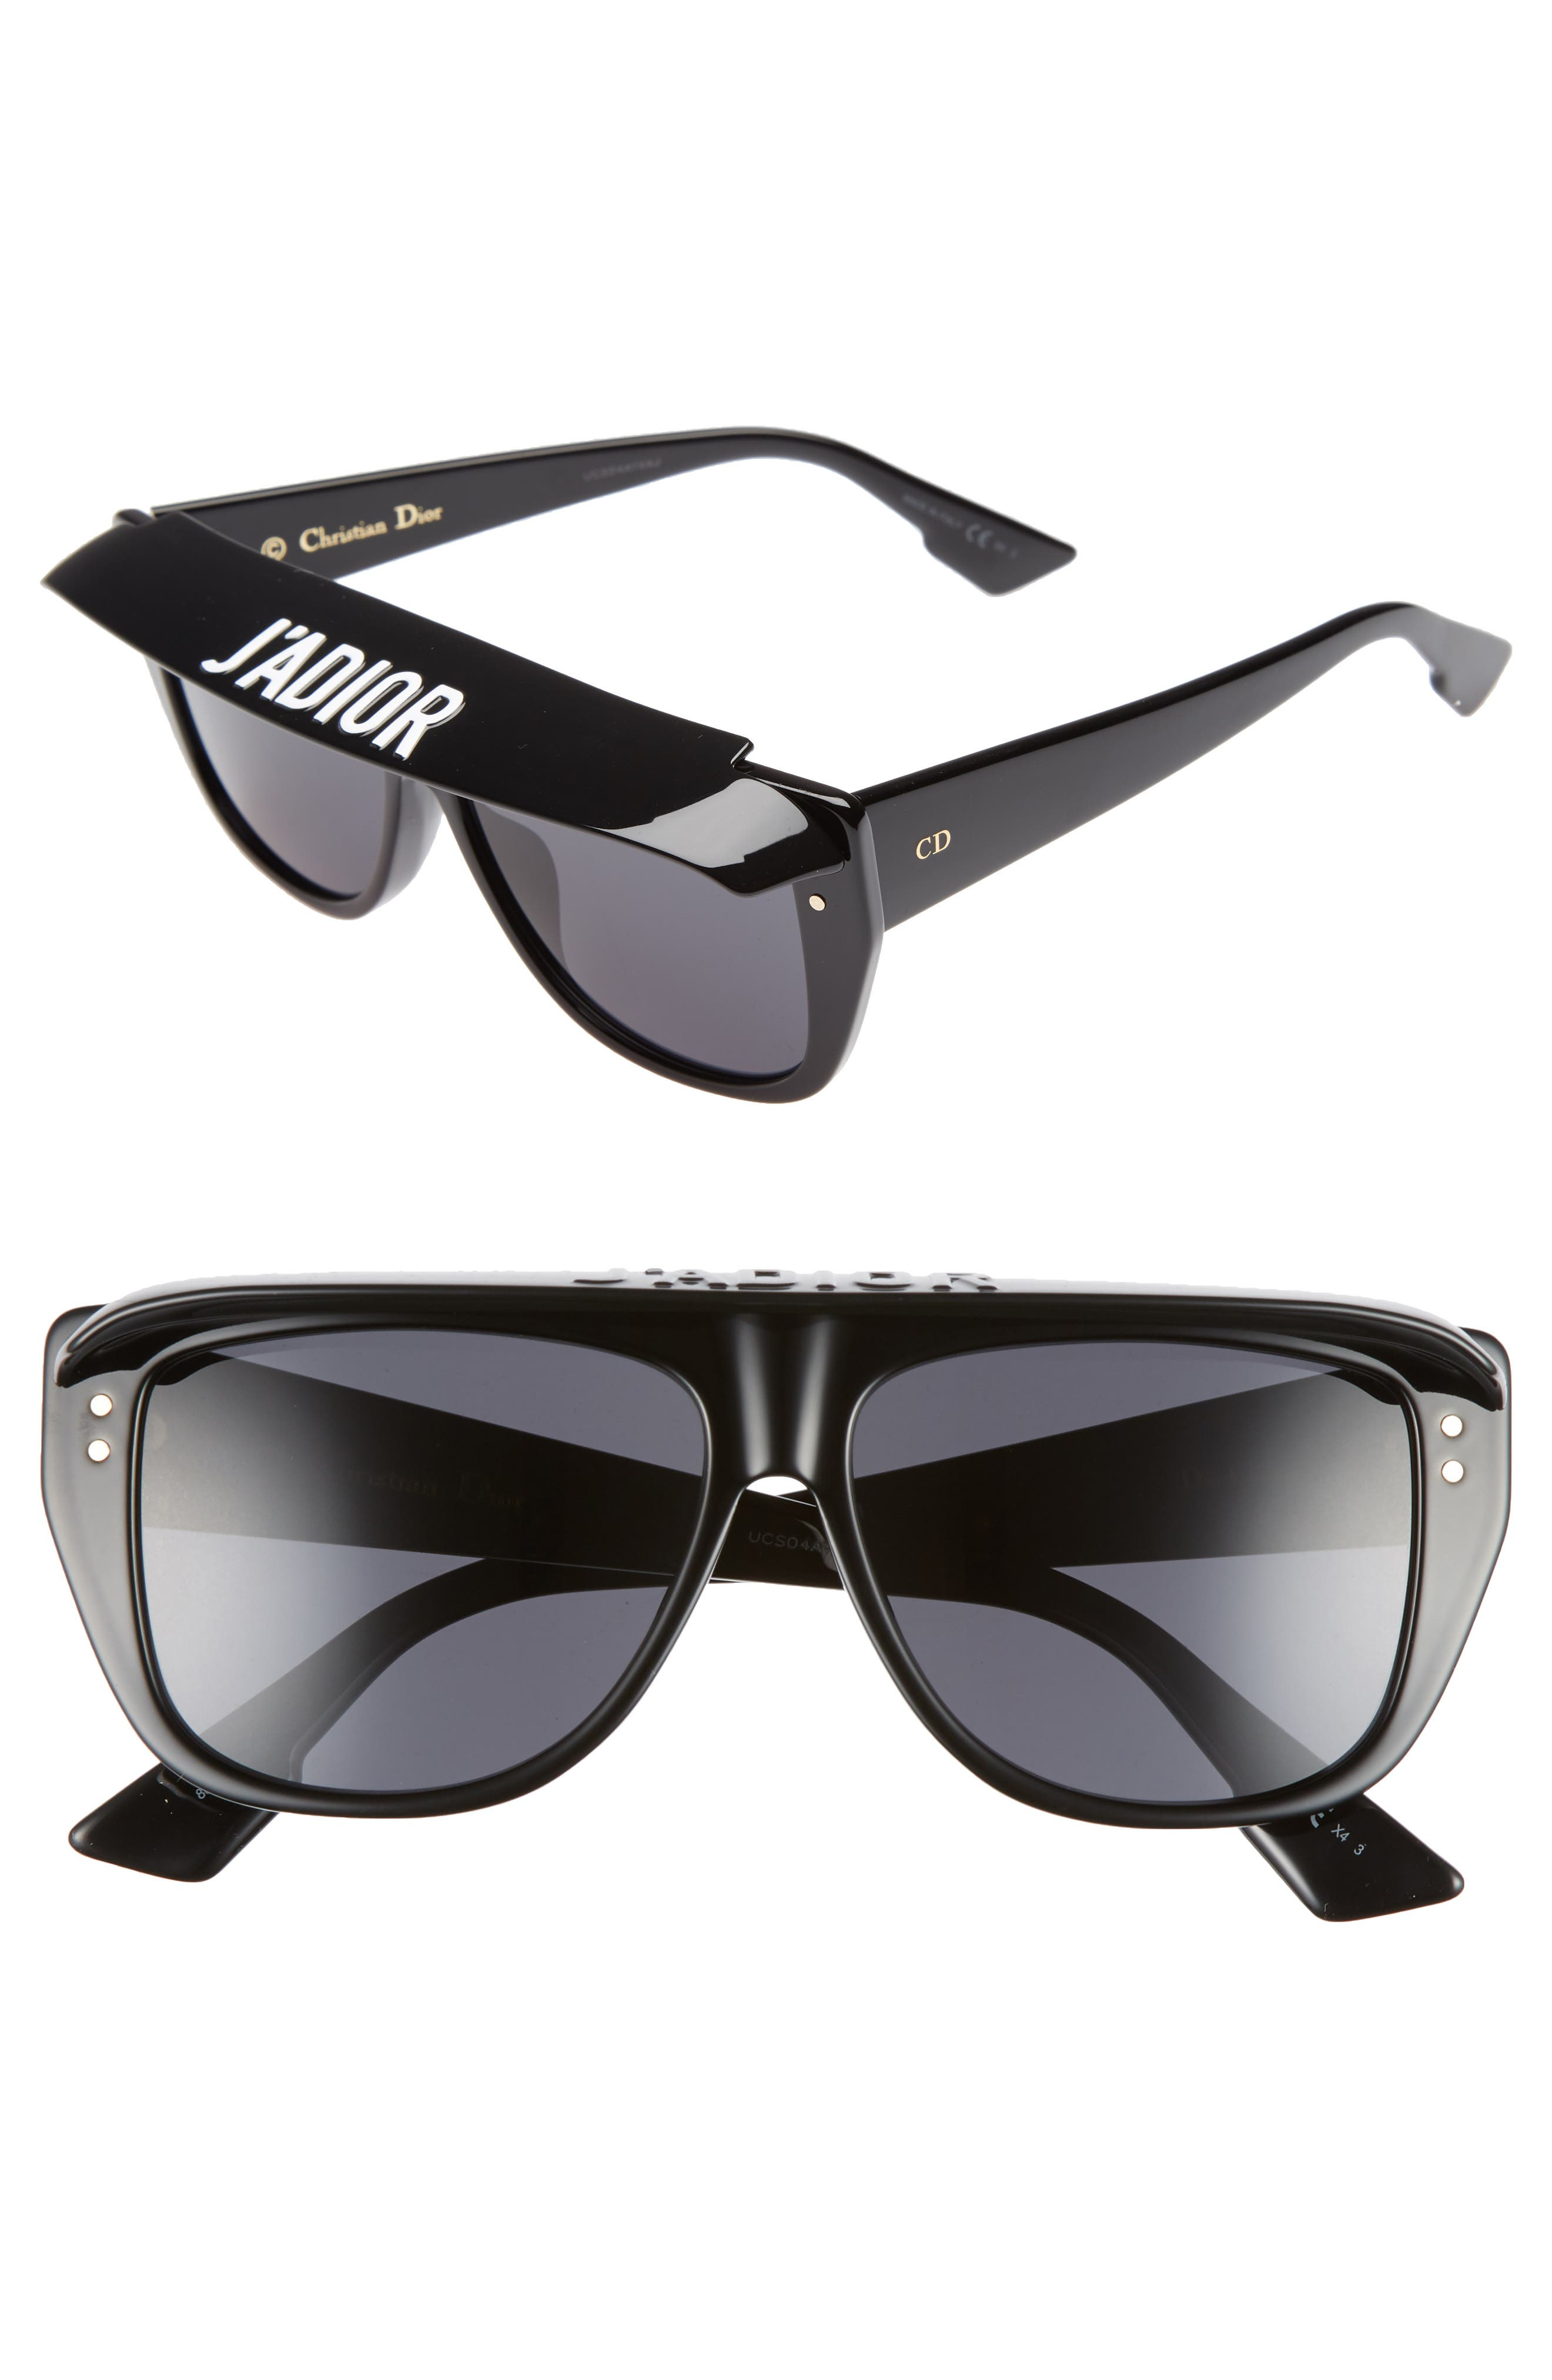 DiorClub2S 56mm Square Sunglasses with Removable Visor,                             Main thumbnail 1, color,                             BLACK